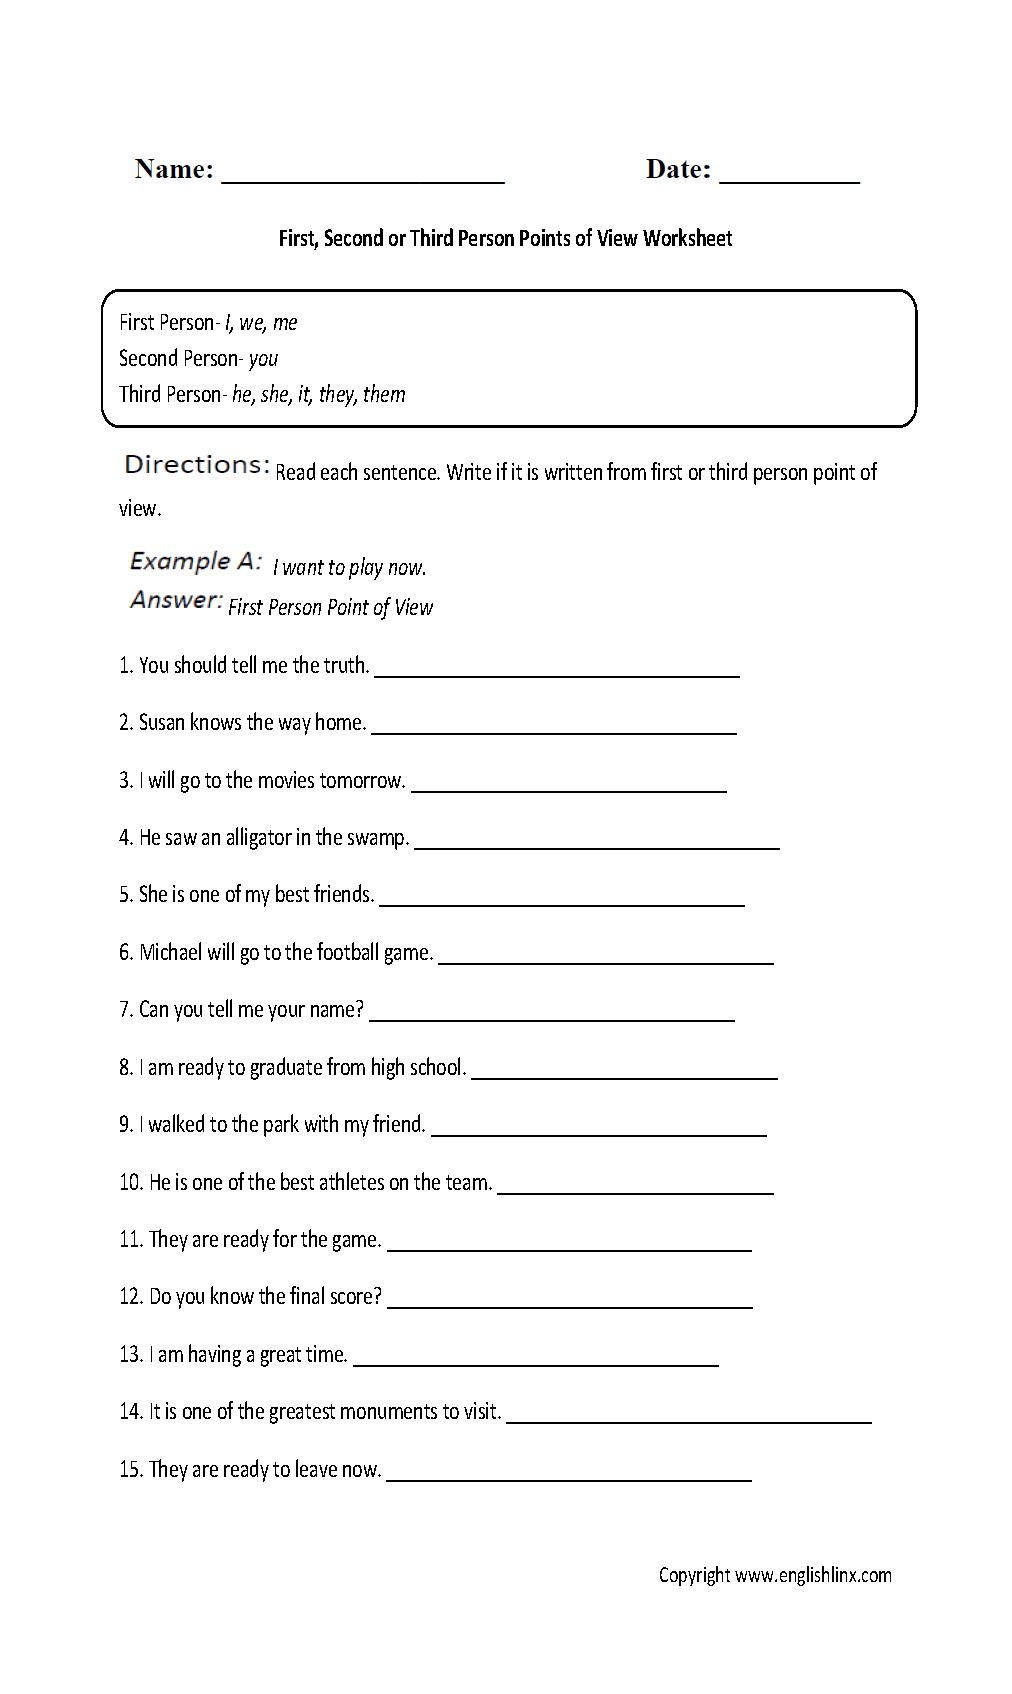 Weirdmailus  Terrific Englishlinxcom  Point Of View Worksheets With Heavenly Point Of View Worksheet With Amazing English Grammar Worksheets Ks Also Daily  Worksheets In Addition Idiom Worksheets Th Grade And Nd Grade Printable Reading Worksheets As Well As Measuring Liquids Worksheet Additionally Colour By Addition Worksheets From Englishlinxcom With Weirdmailus  Heavenly Englishlinxcom  Point Of View Worksheets With Amazing Point Of View Worksheet And Terrific English Grammar Worksheets Ks Also Daily  Worksheets In Addition Idiom Worksheets Th Grade From Englishlinxcom